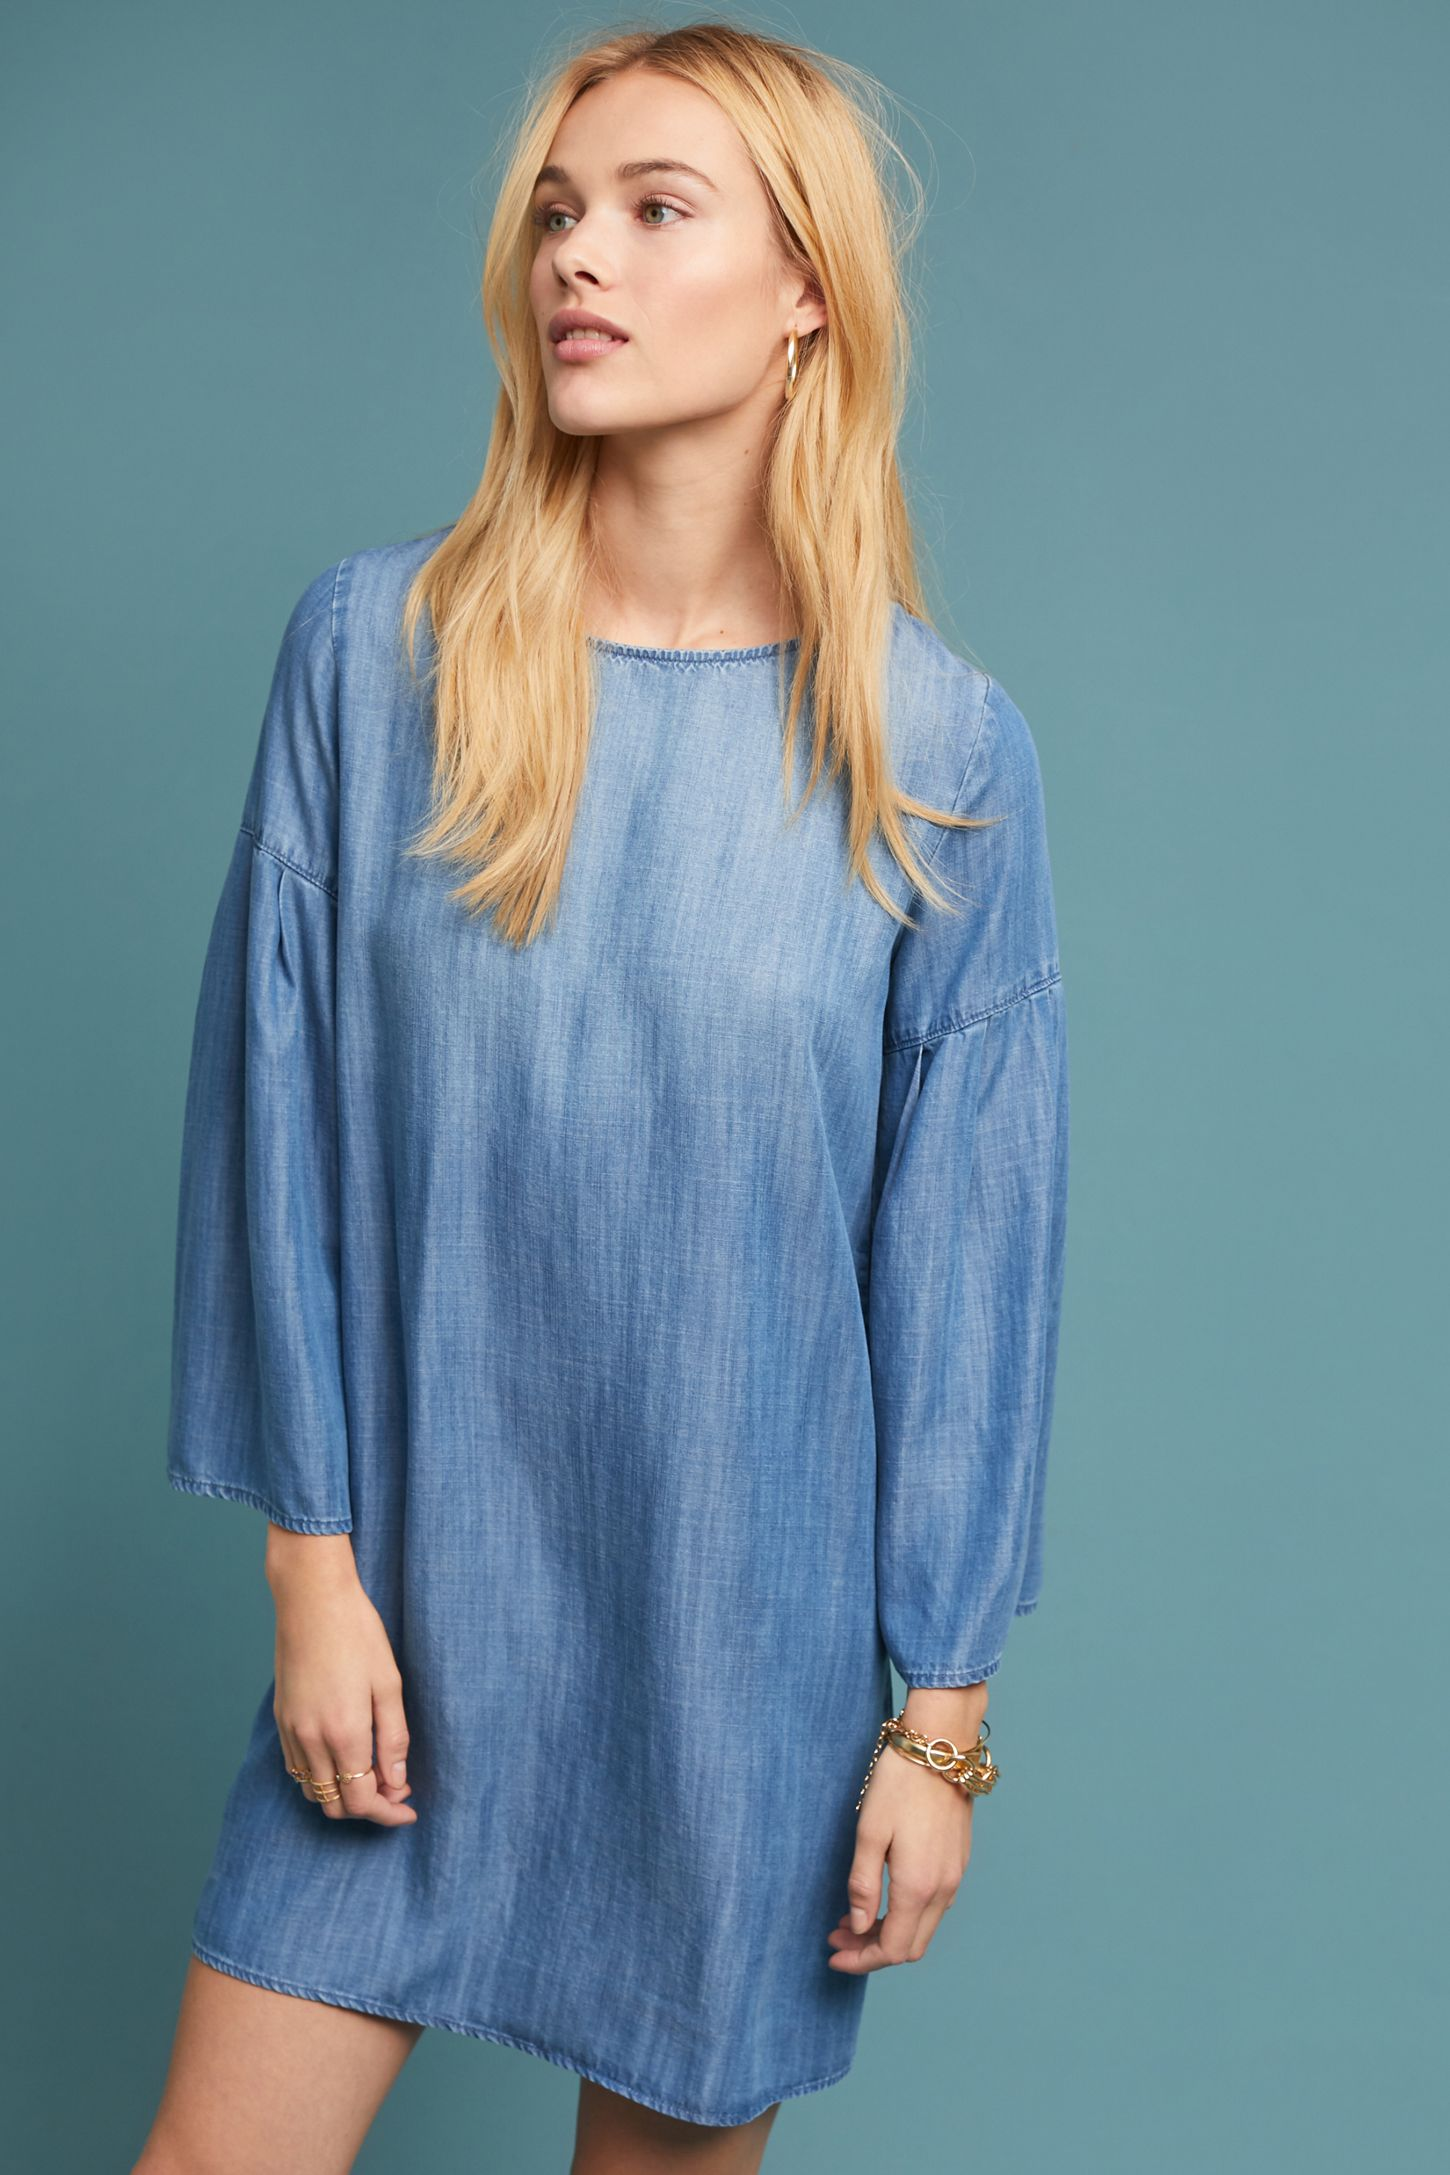 44d067d0e97 Cloth & Stone Chambray Tunic Dress | Anthropologie